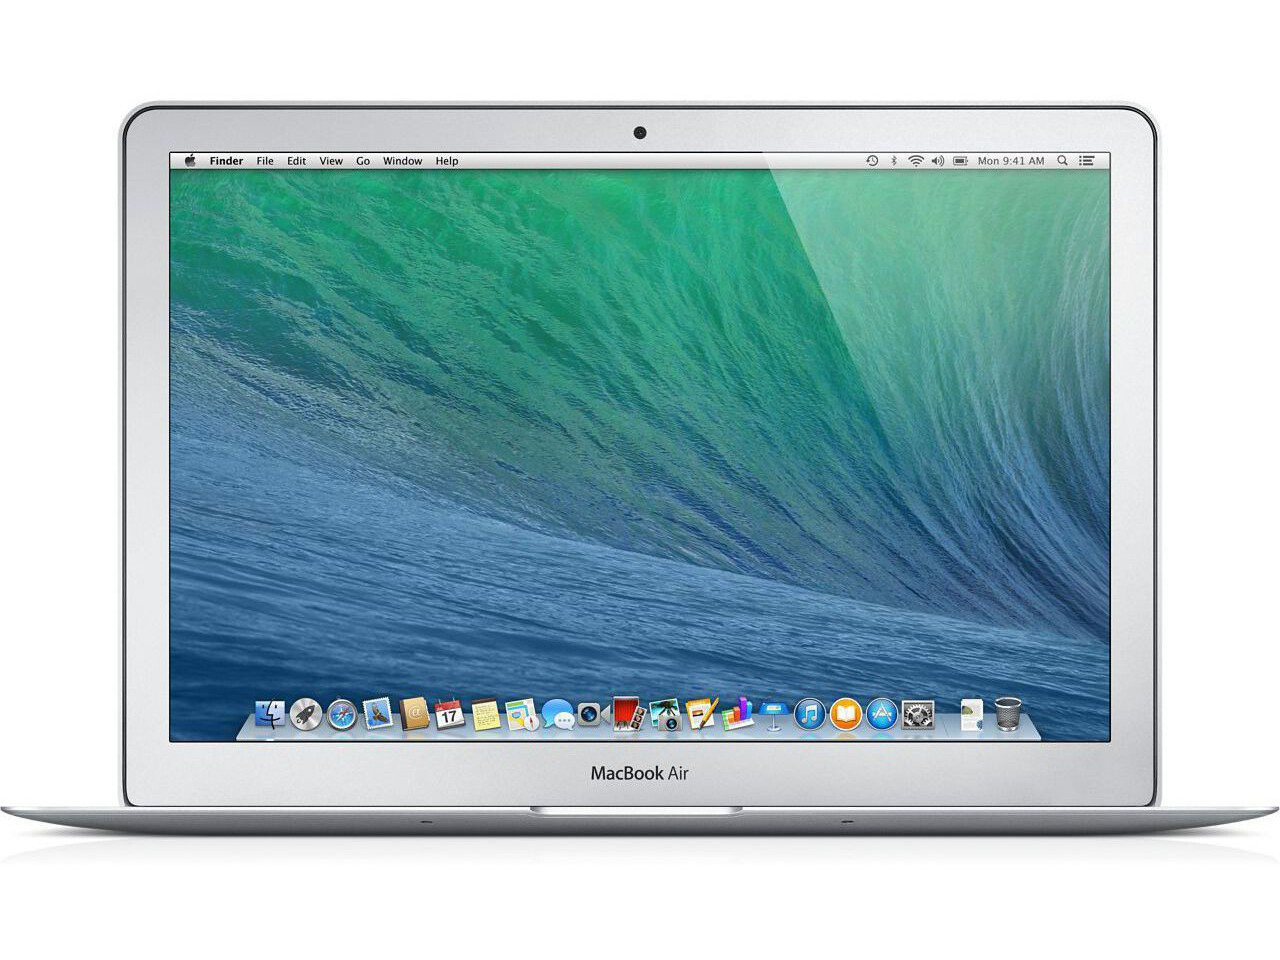 macbook air 13 inch 2013 silver